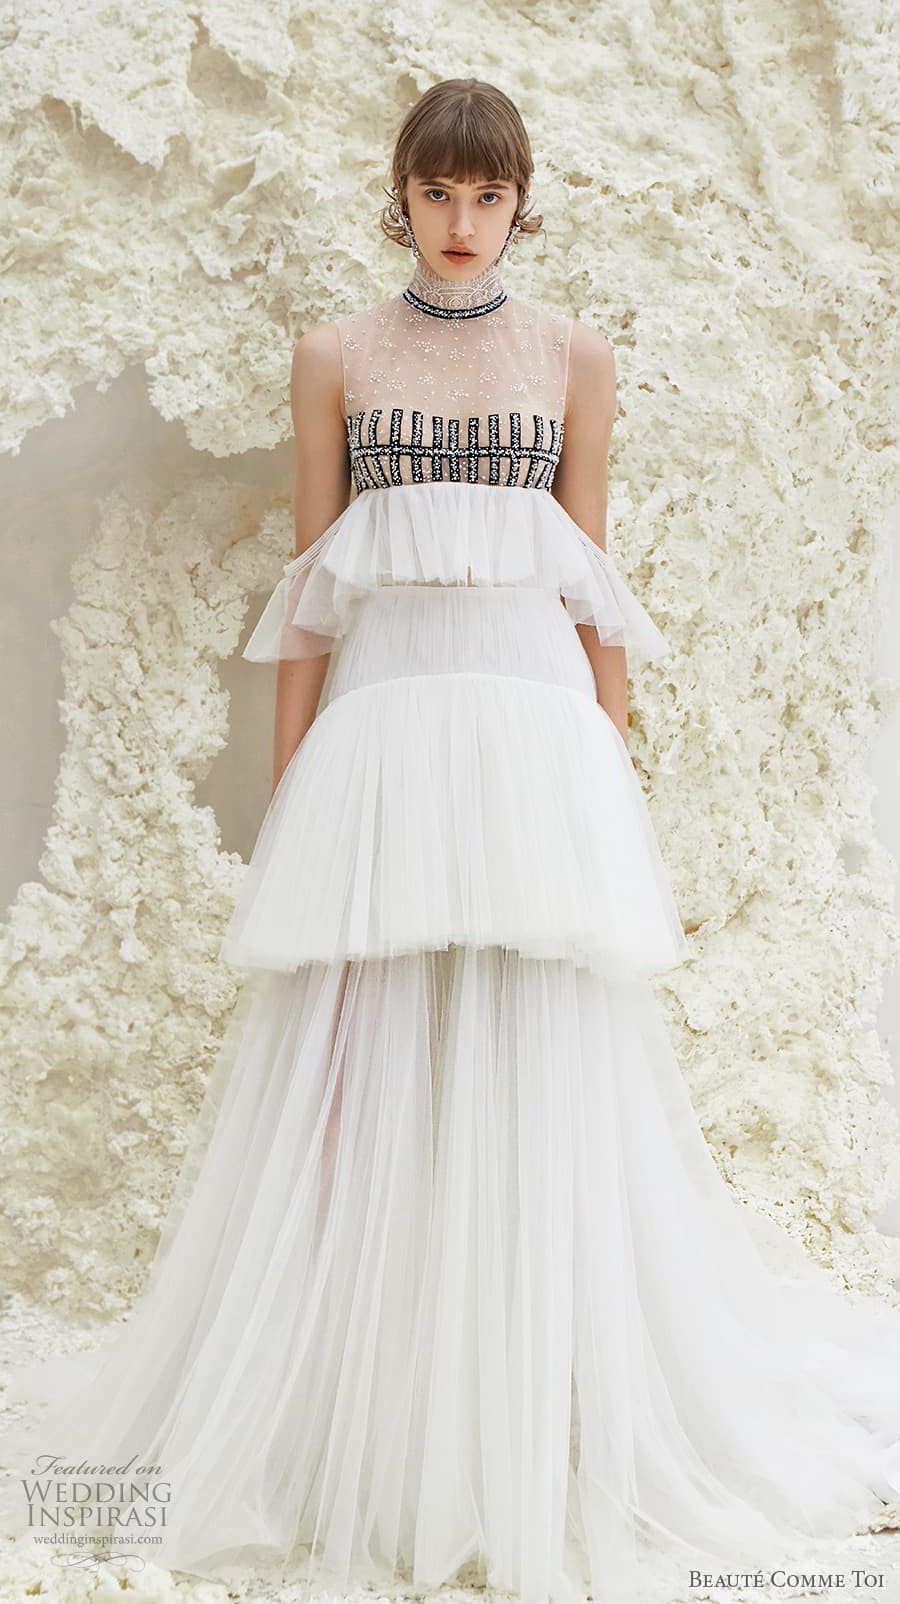 beaute comme toi spring 2022 bridal sleeveless high neck lightly embellished bodice empire a line wedding dress sheer button back tiered skirt sweep train (faye) mv